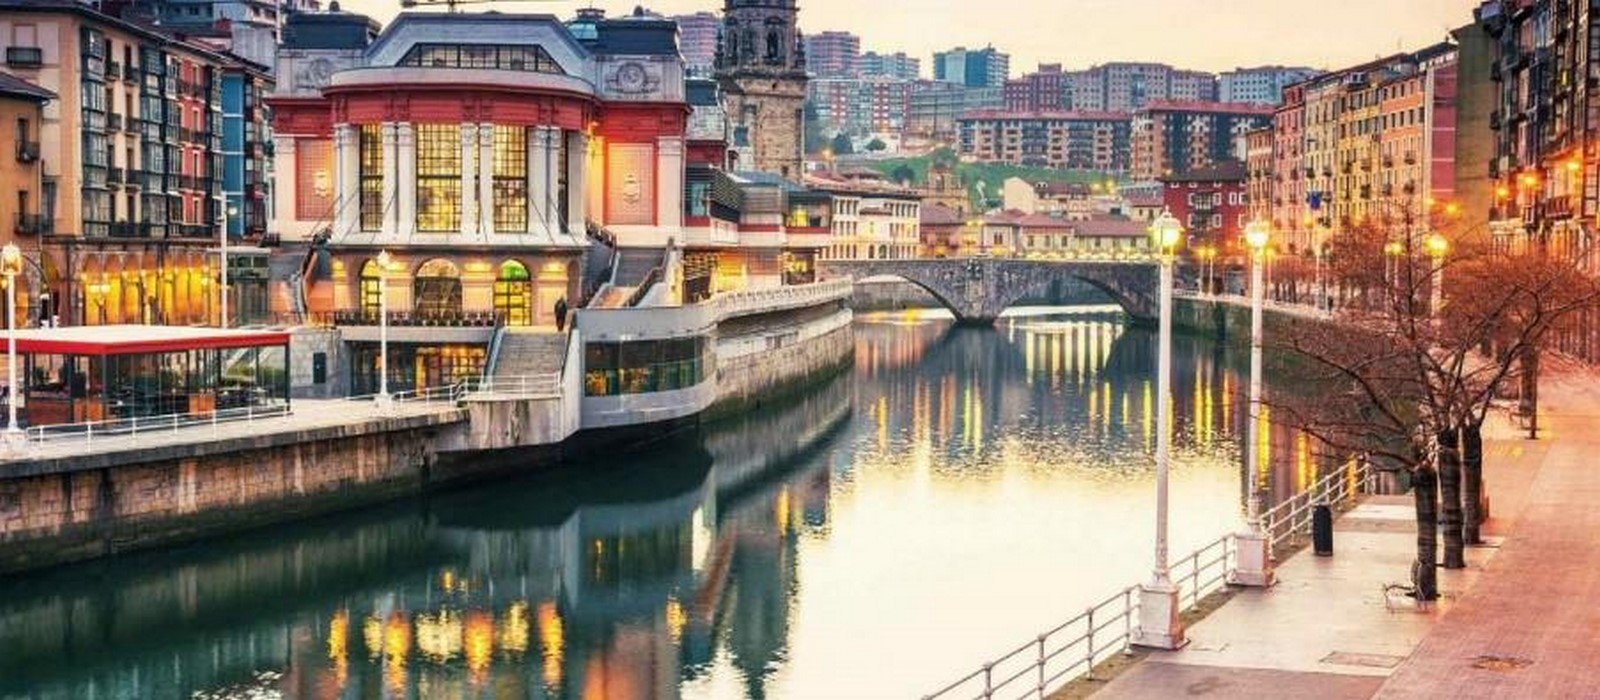 20 Examples of World's Best Cities - Sheet9